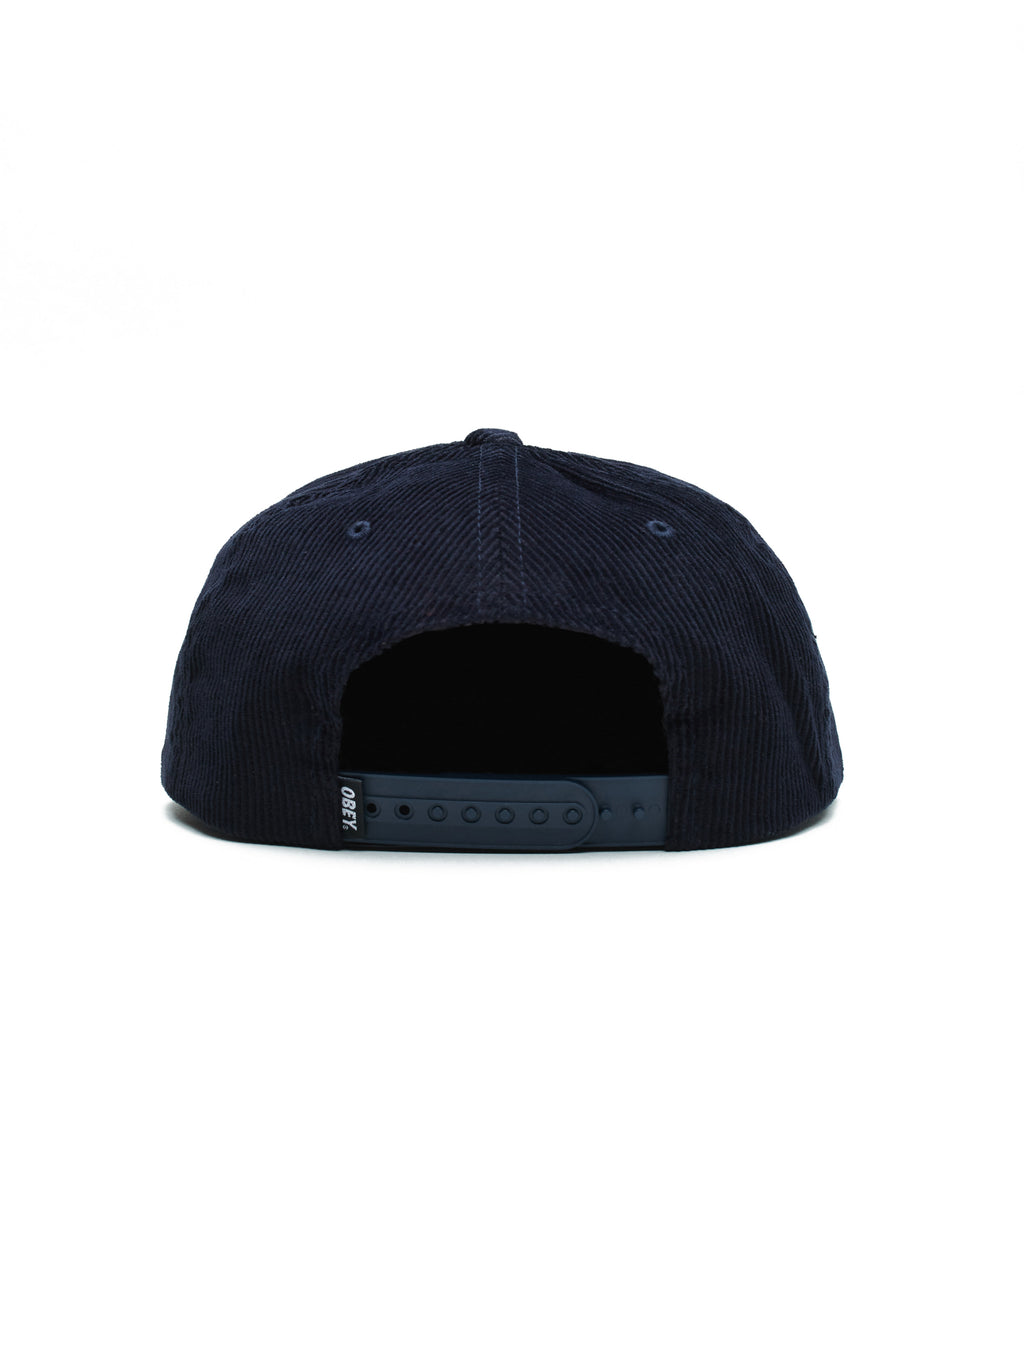 OBEY - Brush 6 Panel Men's Strapback, Navy